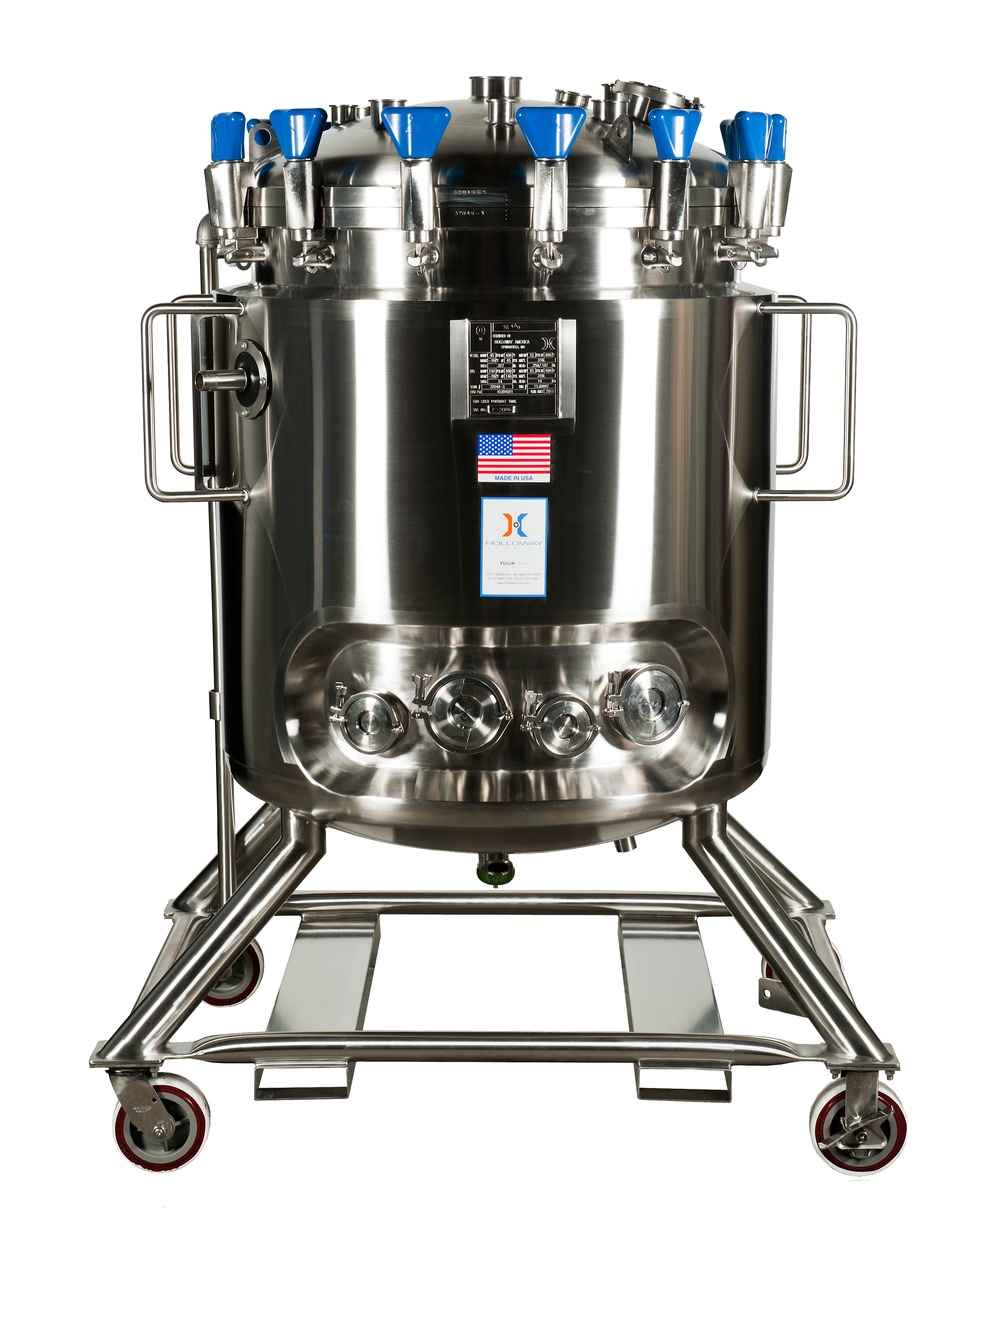 This vertical vessel for the laboratory is among innovative portable pressure vessels by Holloway.